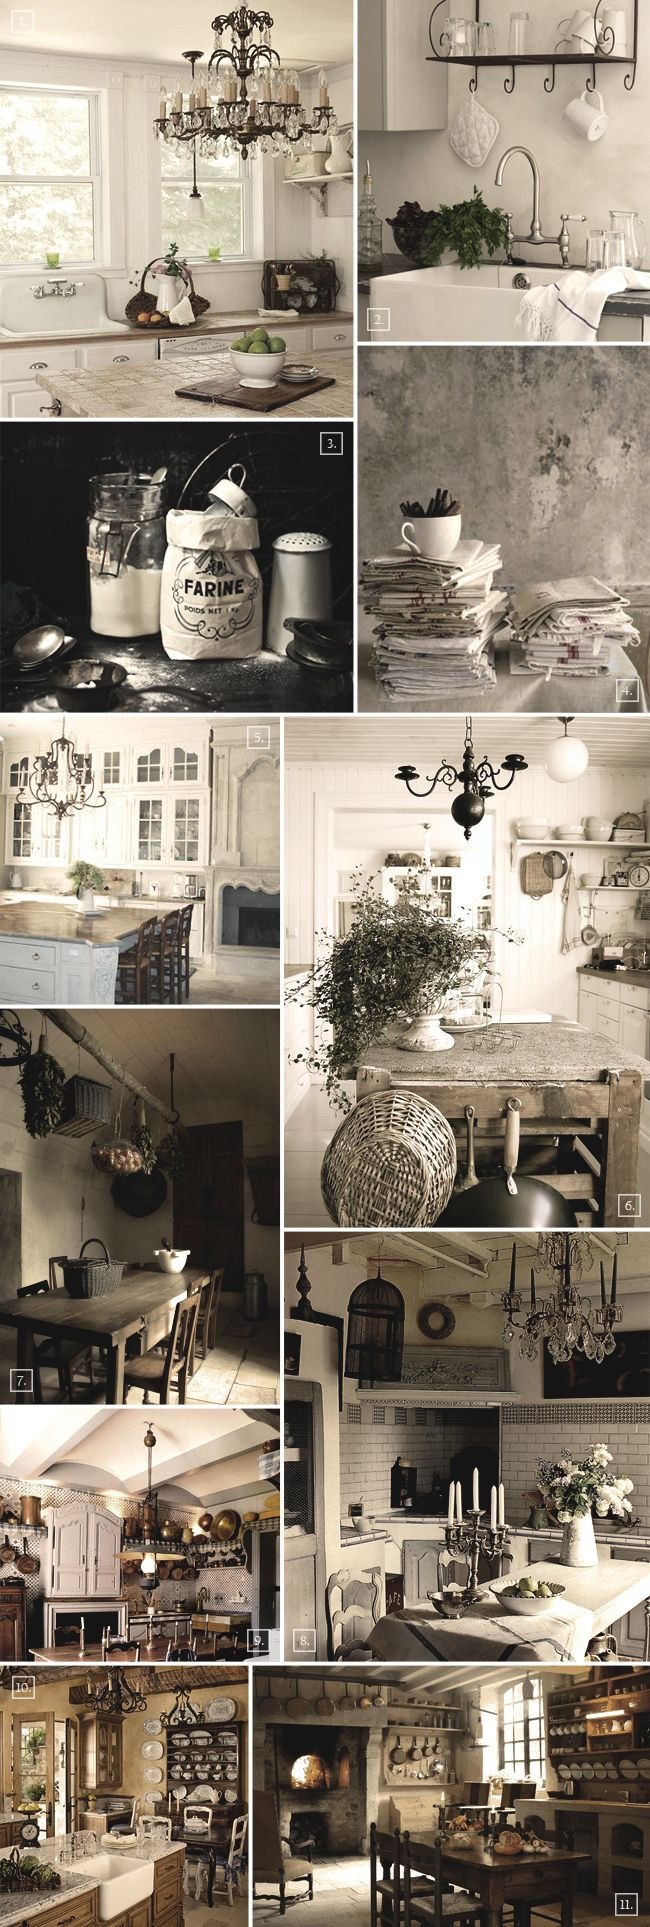 Country French Kitchen Decor 17 Best Ideas About French Country Kitchens On Pinterest Country